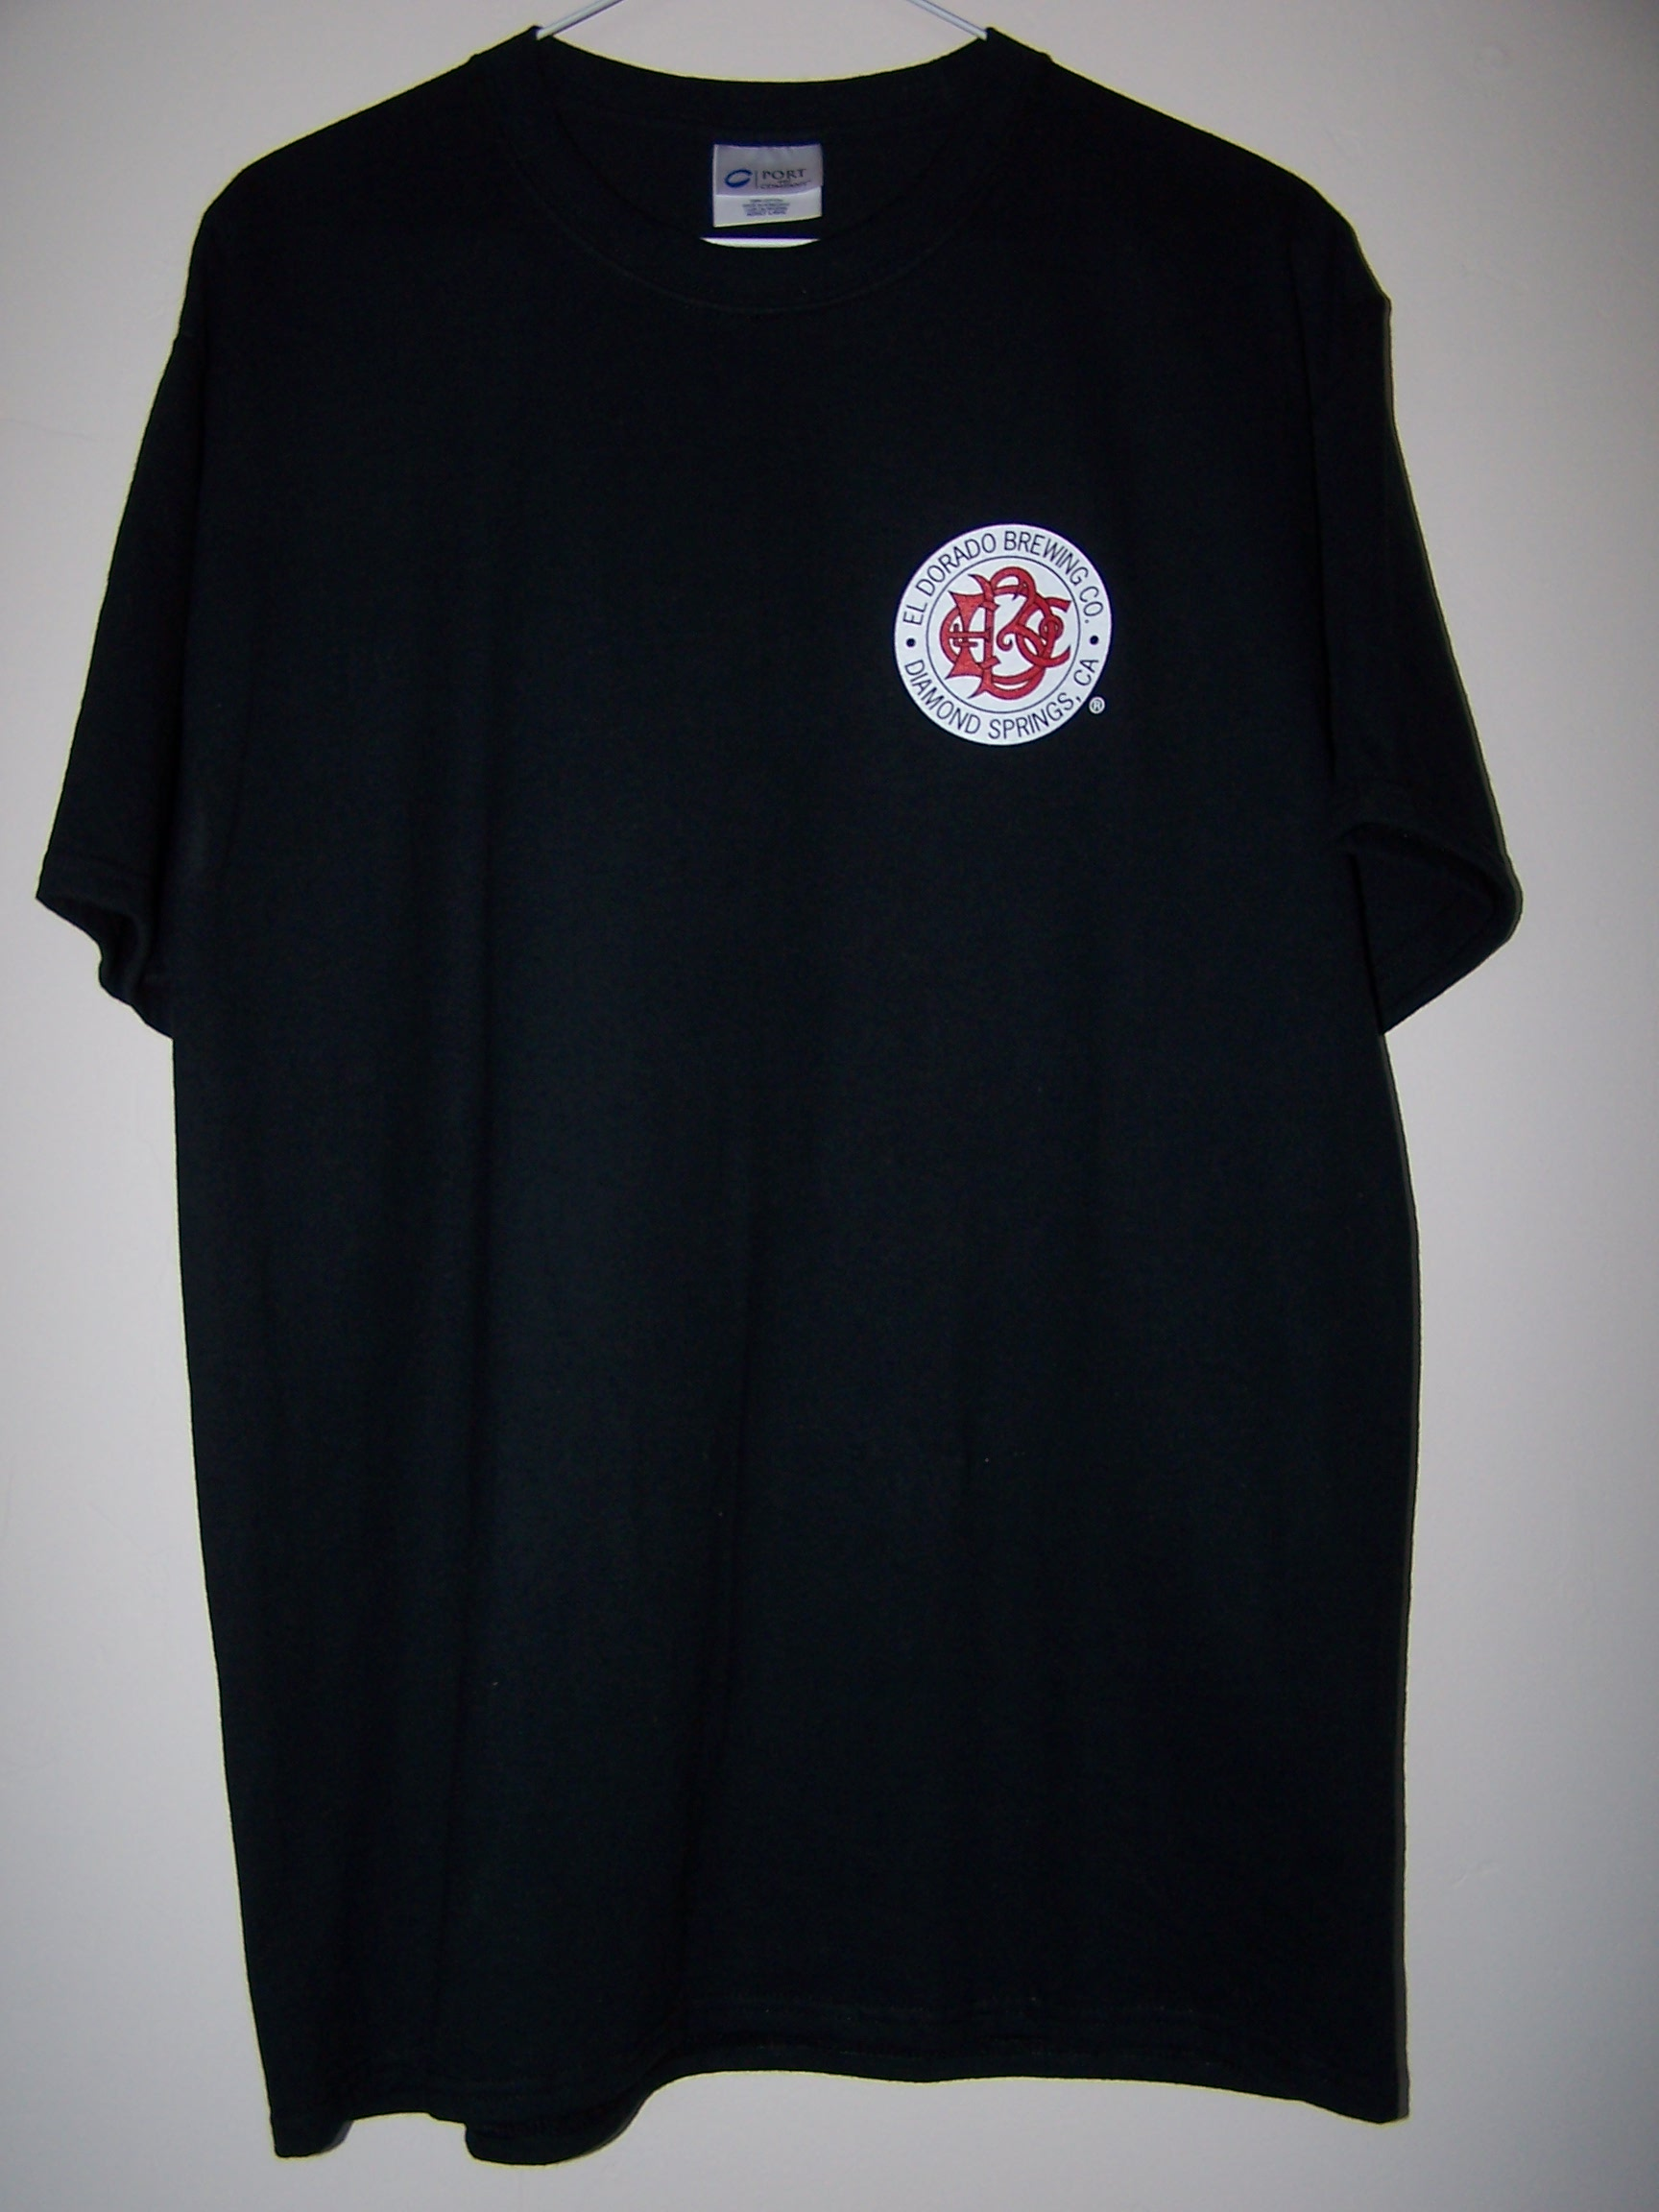 Black T-Shirt  $20-25 [Small Logo Front]